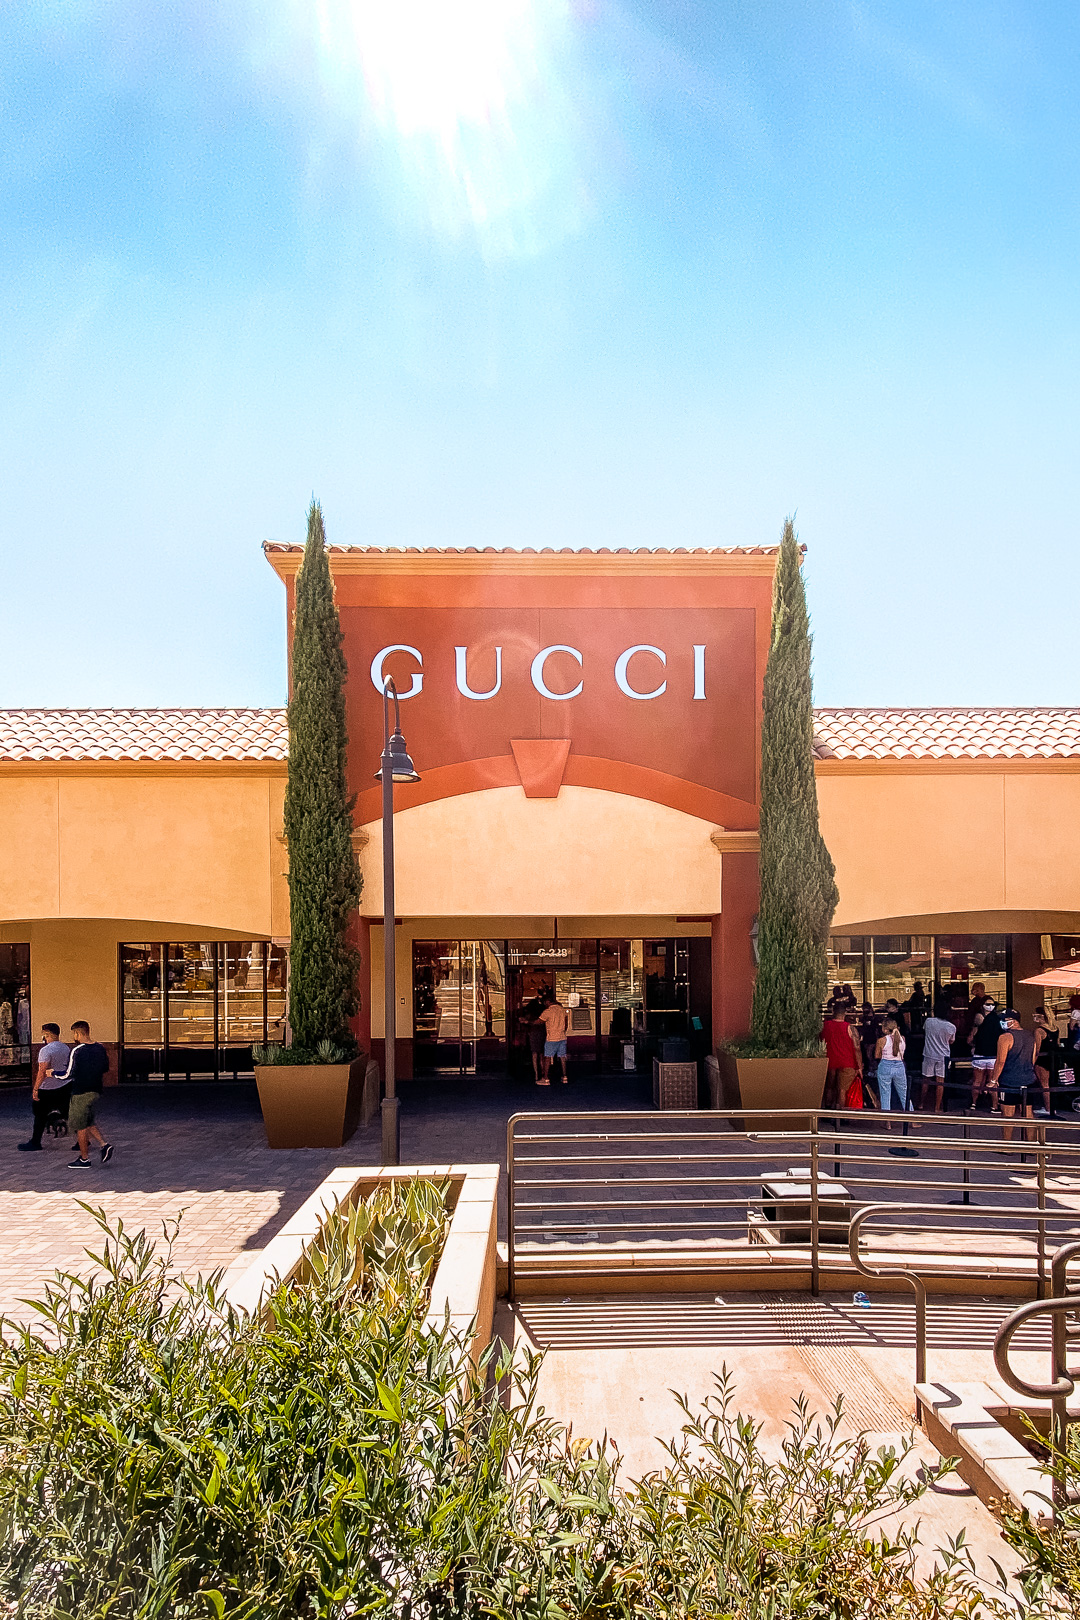 The Ultimate Guide to the Gucci Outlet